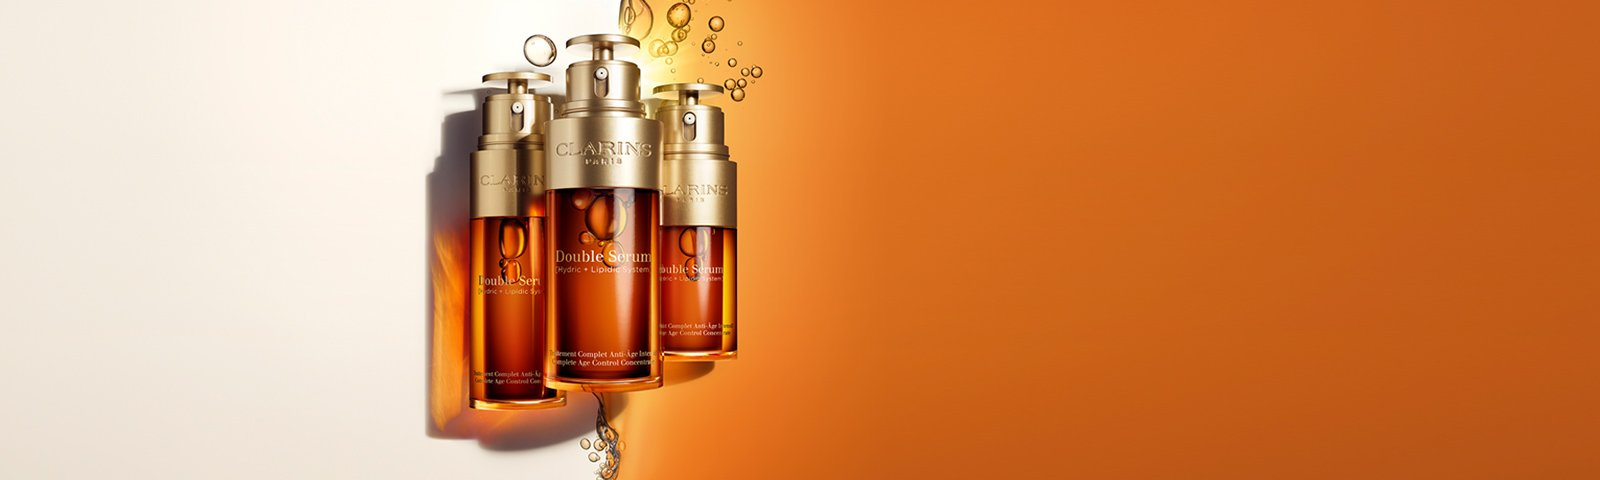 Double Serum: Tested. Trusted. Recommended. Two power-packed serums in one to address all visible signs of aging.